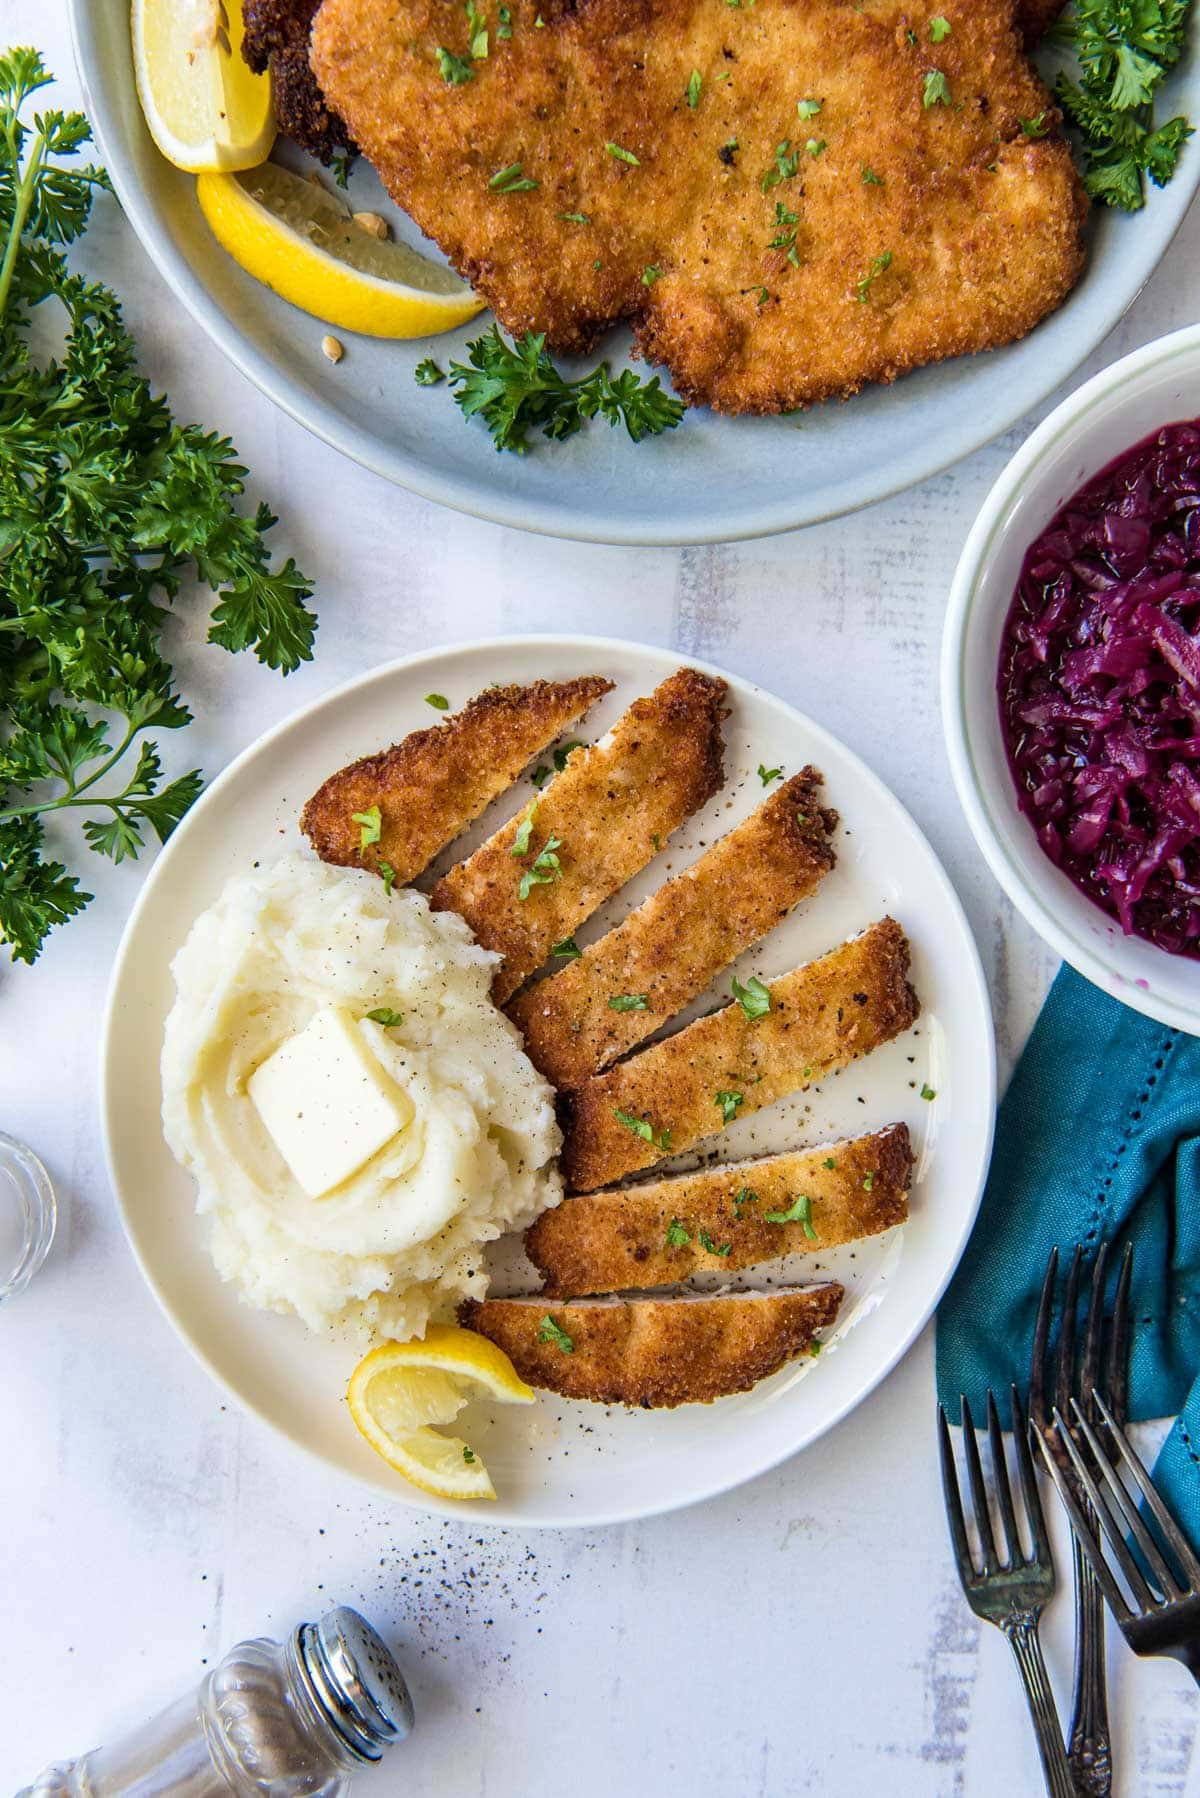 3 white plates, red cabbage, mashed potatoes, fried chicken cutlets, blue napkin, forks, parelsy